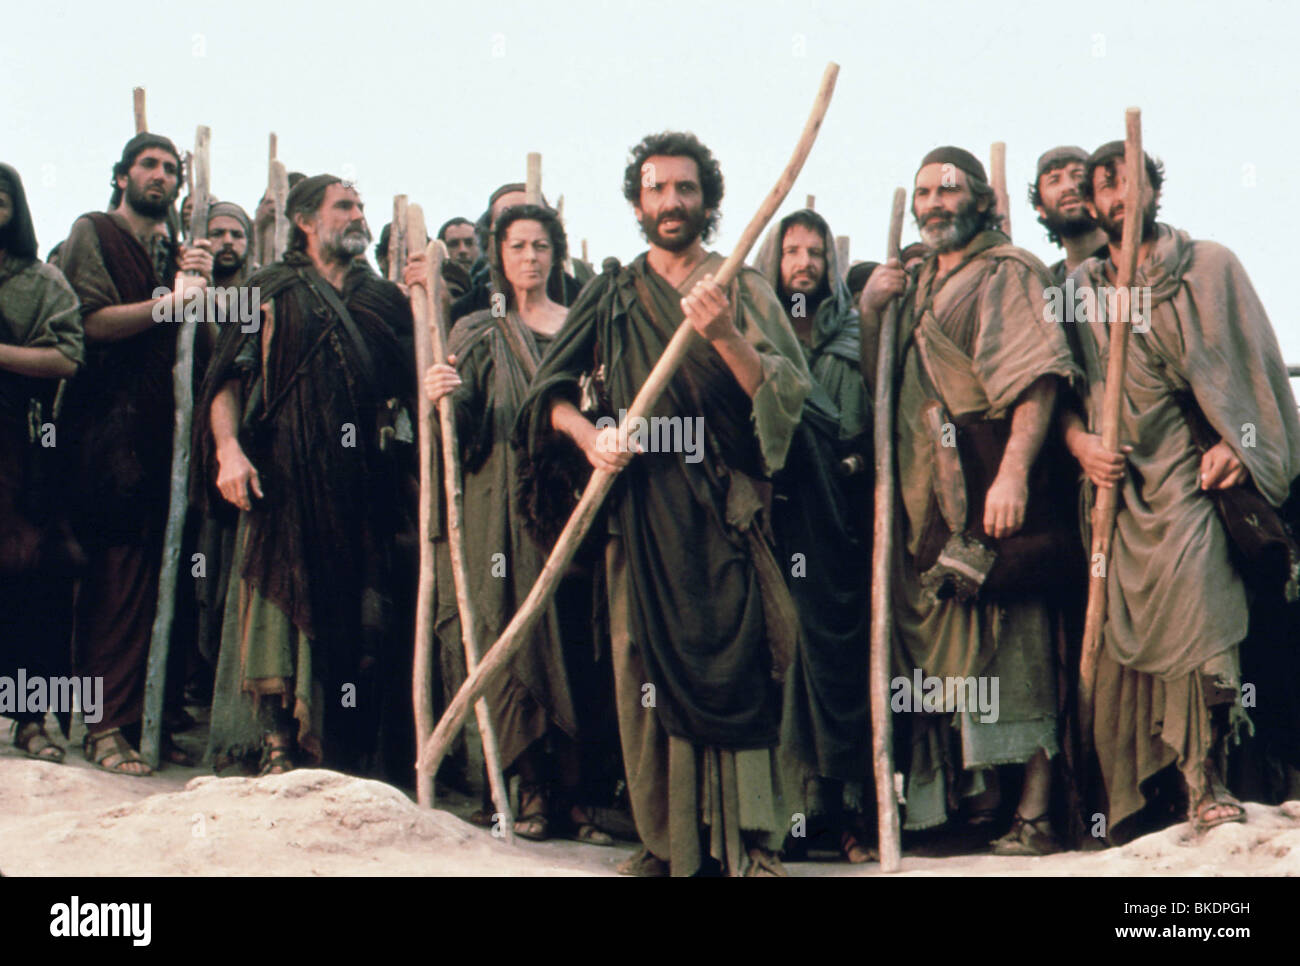 MOSES (TVM) (1996) BEN KINGSLEY, DAVID SUCHET MOS 003 - Stock Image